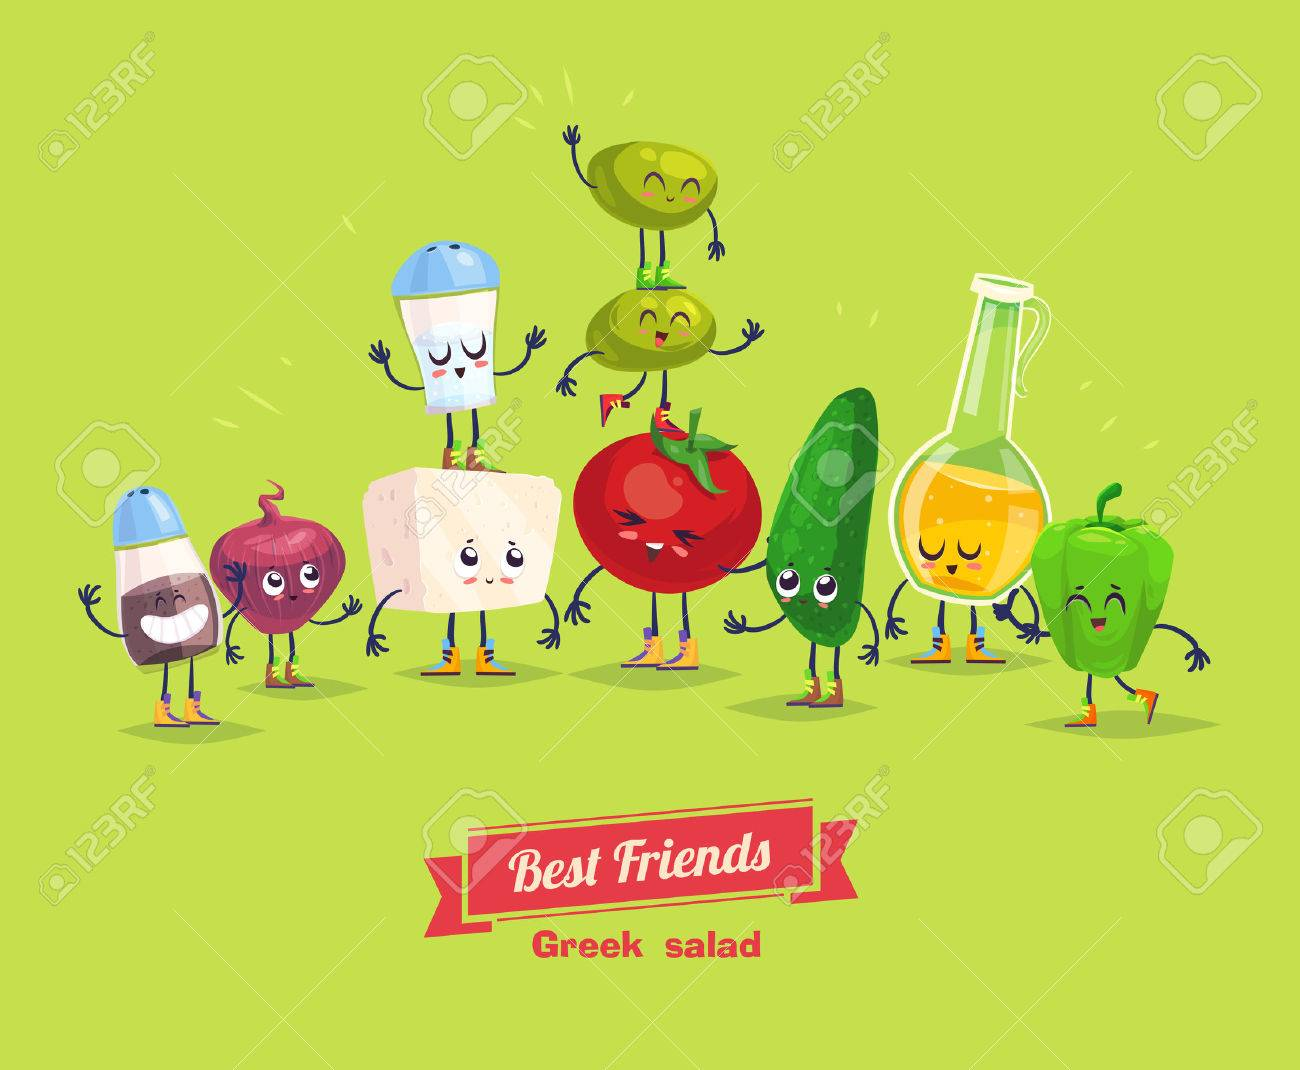 Greek salad. Cute and funny cartoon vegetable characters with olive oil. Best friends set. - 50040566